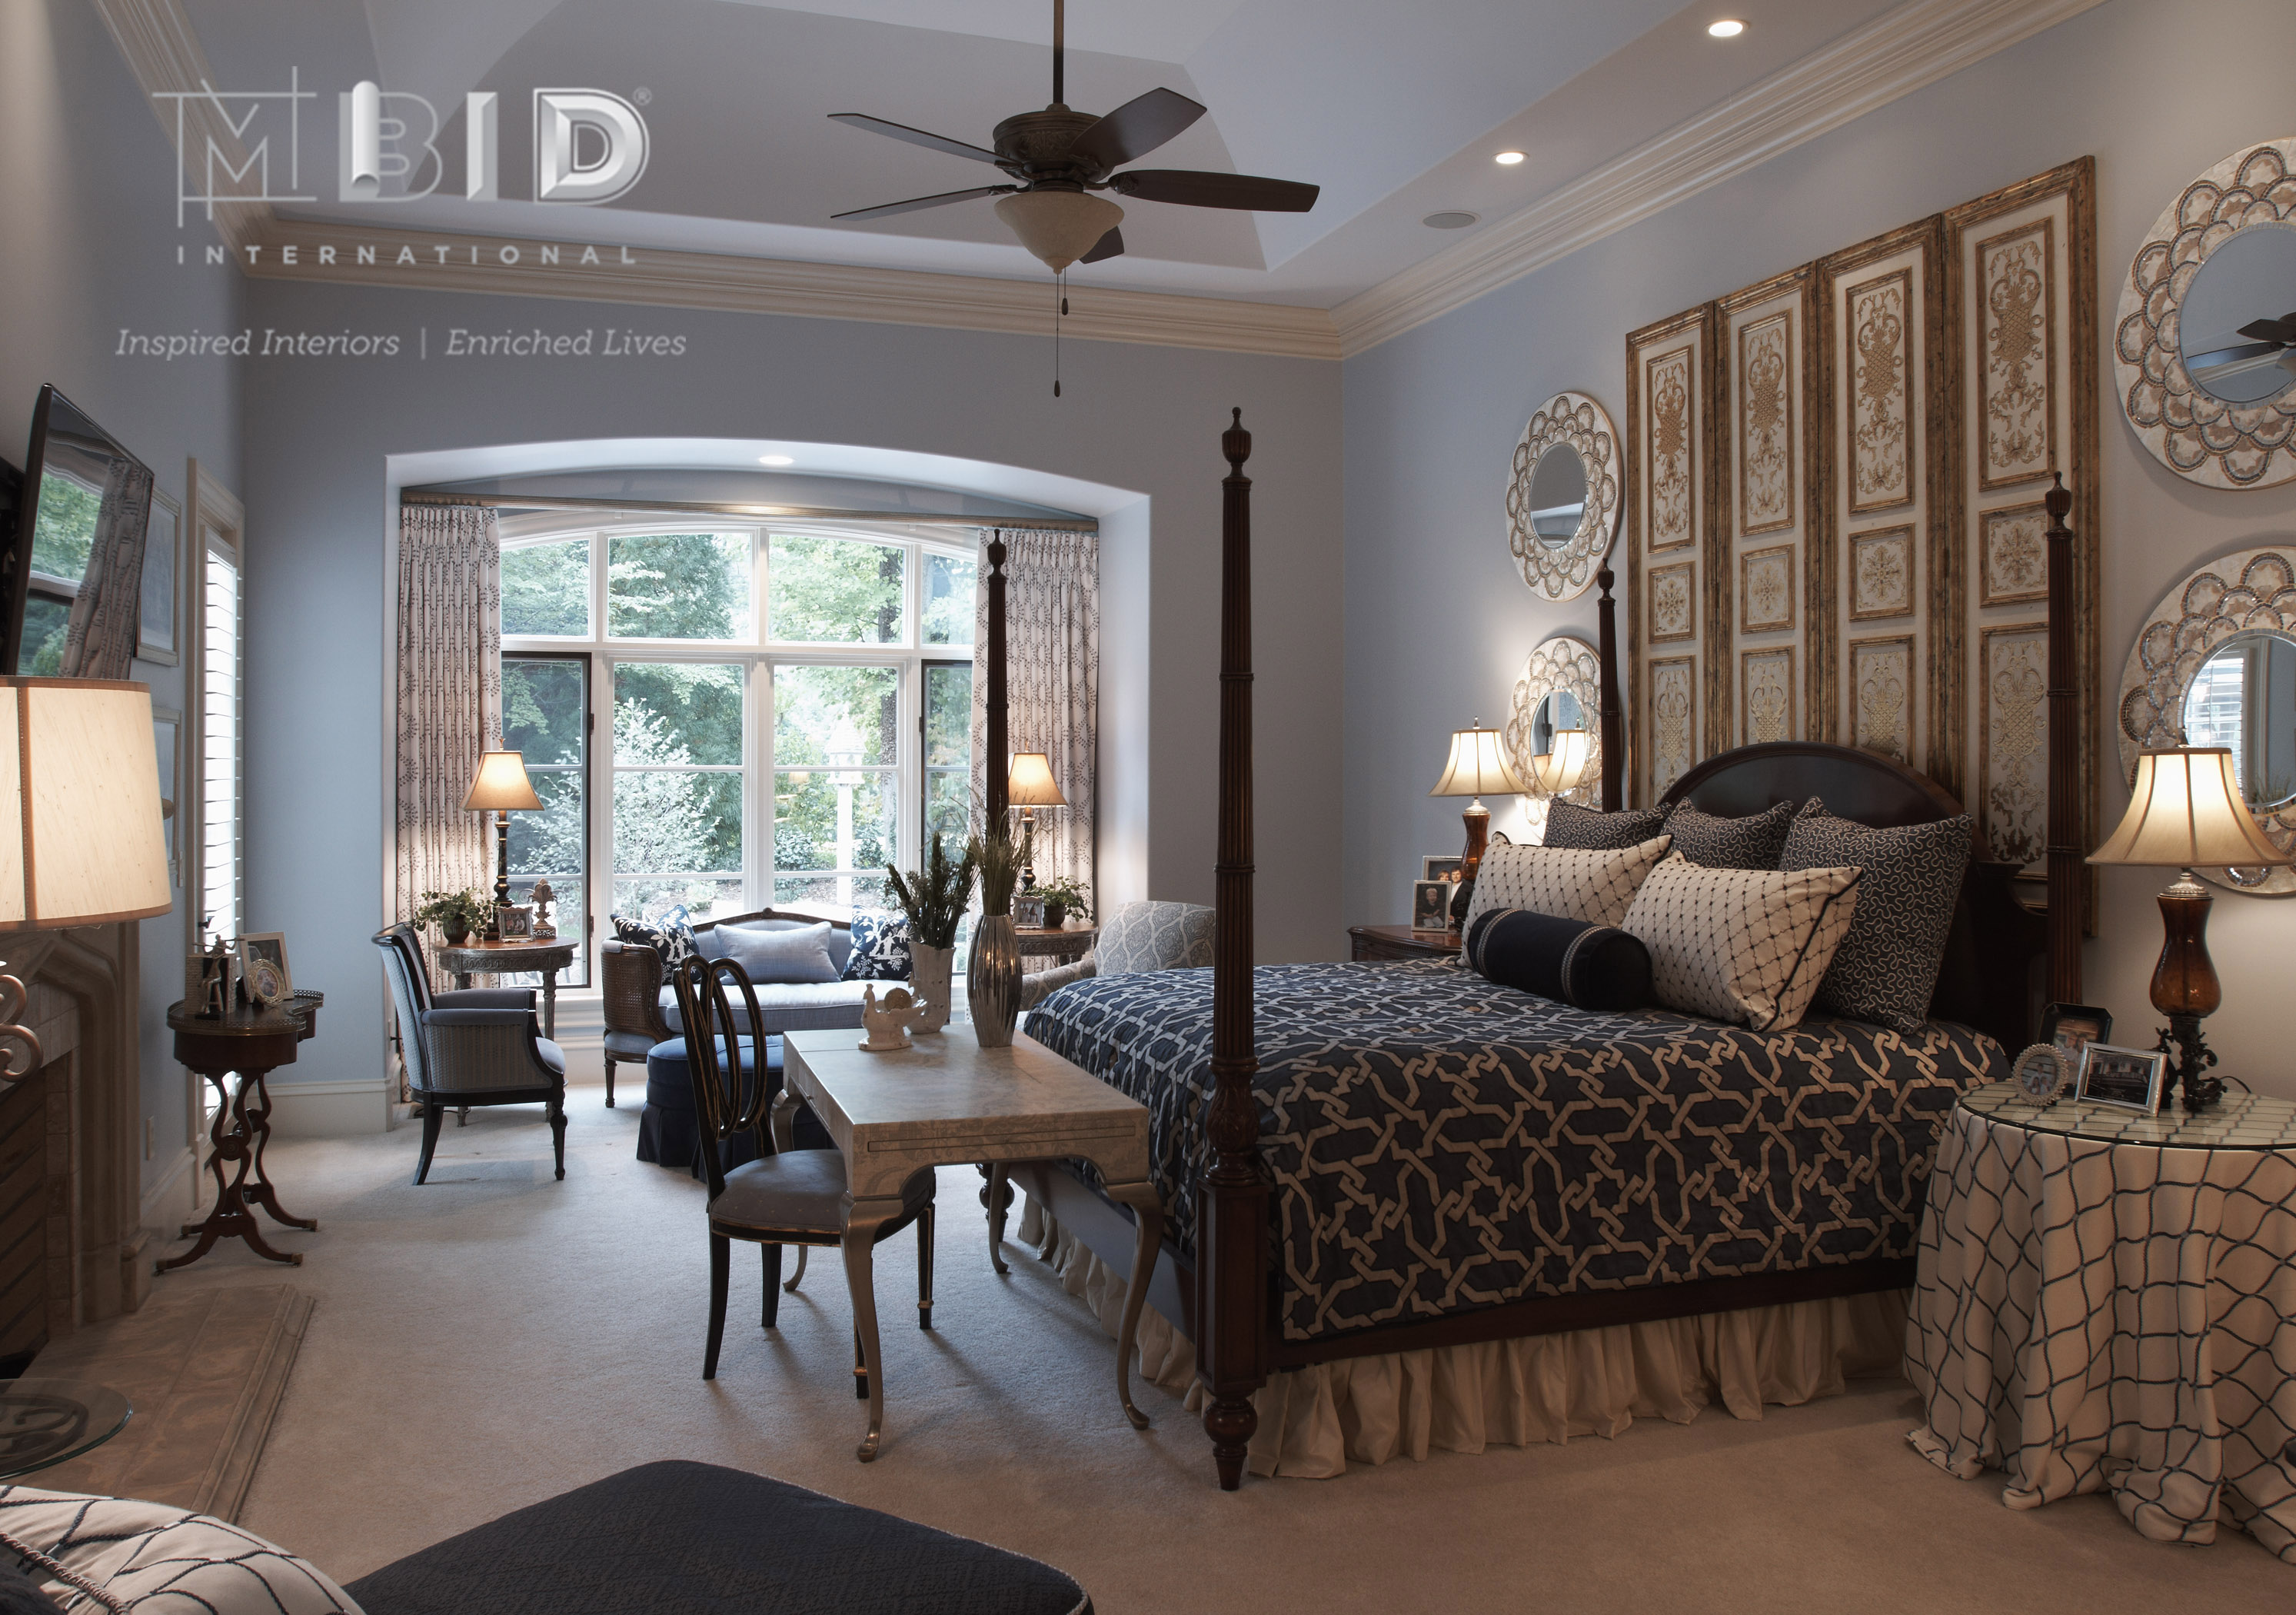 French Chateau Inspired Bedroom Resort Living at Home - MBID ...